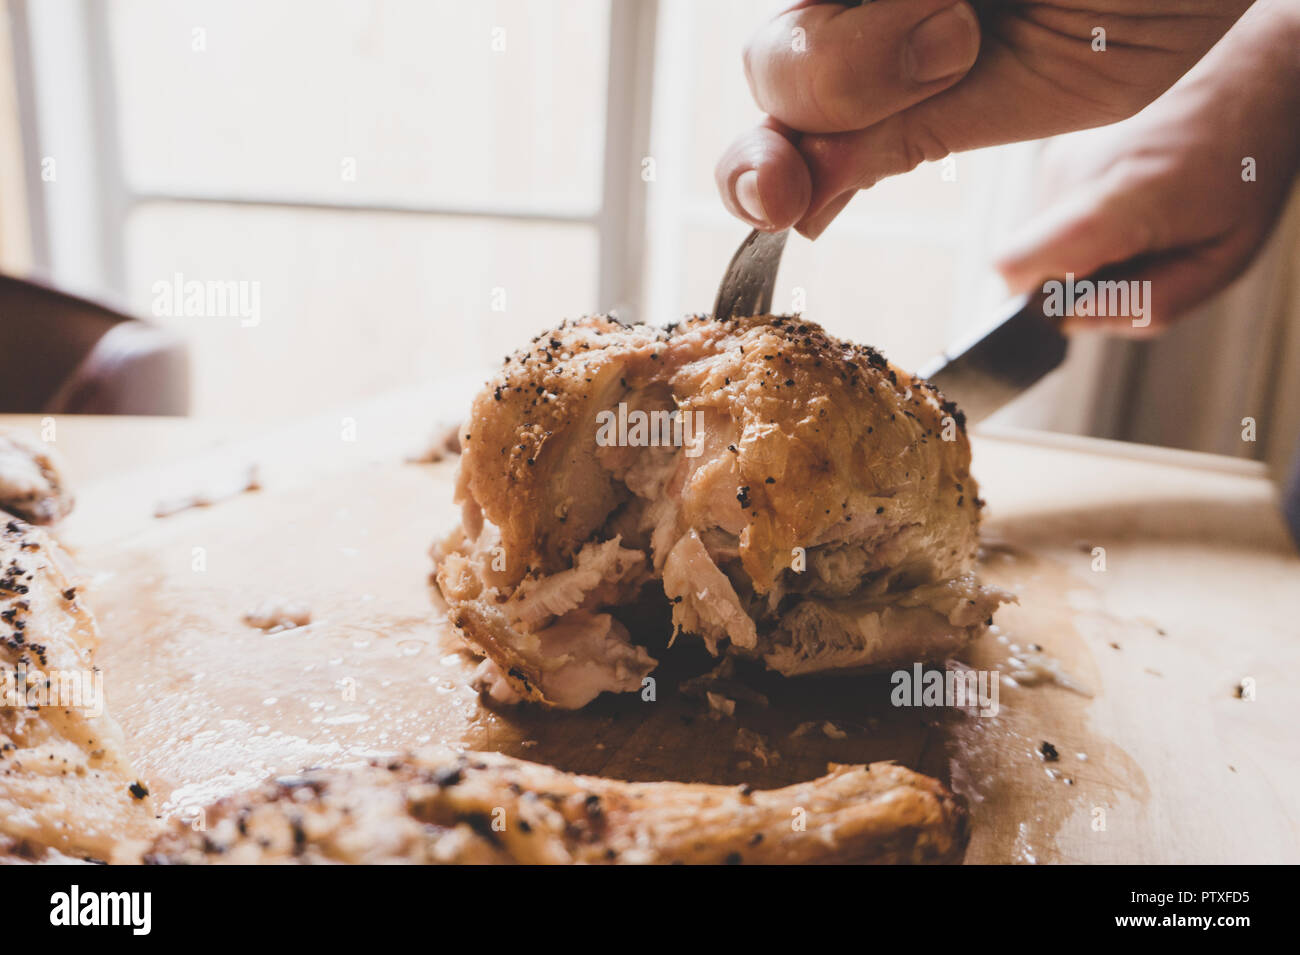 Close-up of perfectly roasted chicken being carved in gourmet kitchen natural light. Will make you hungry! - Stock Image